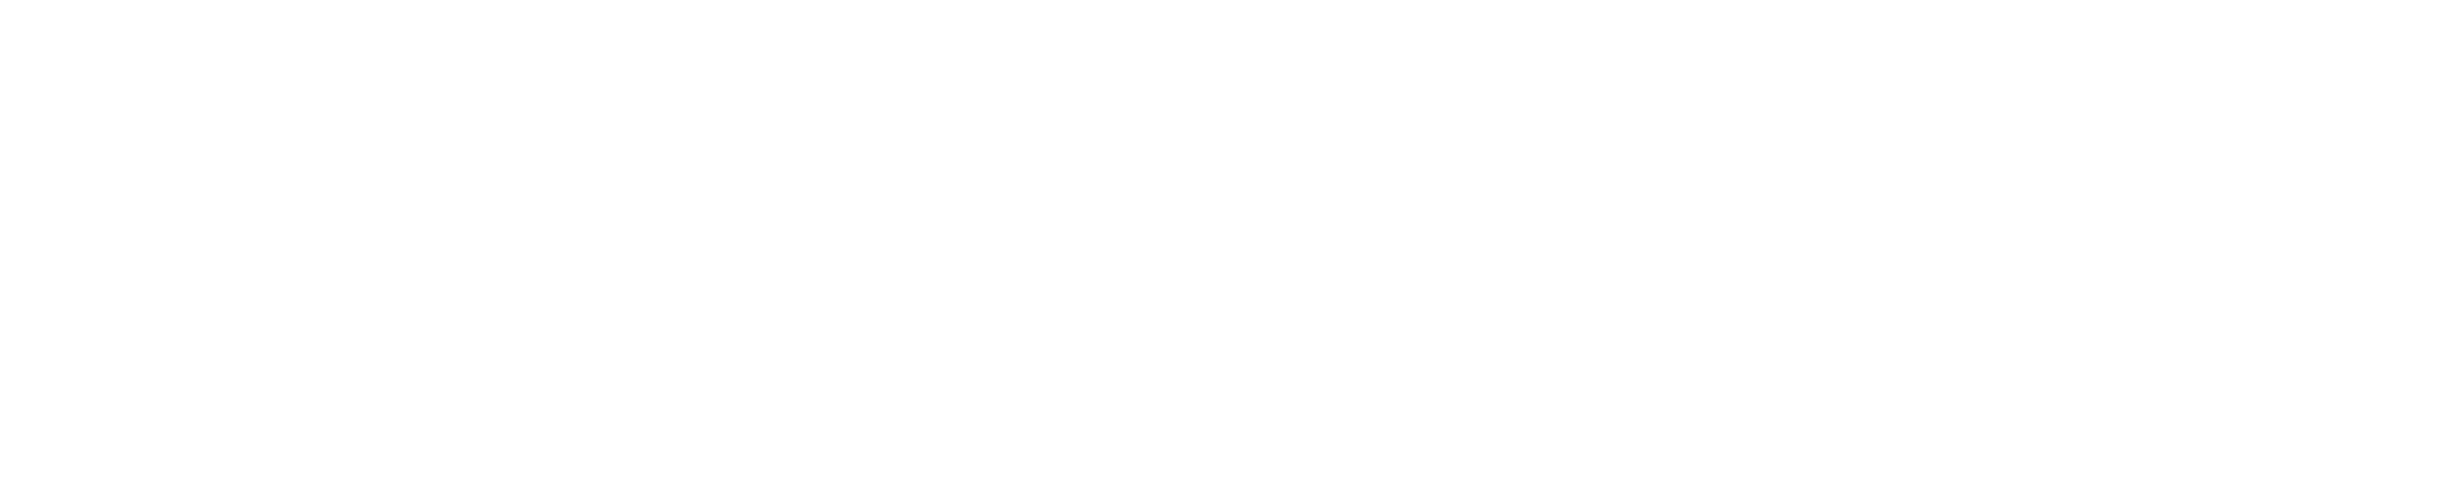 Sony logo white png. Images free download